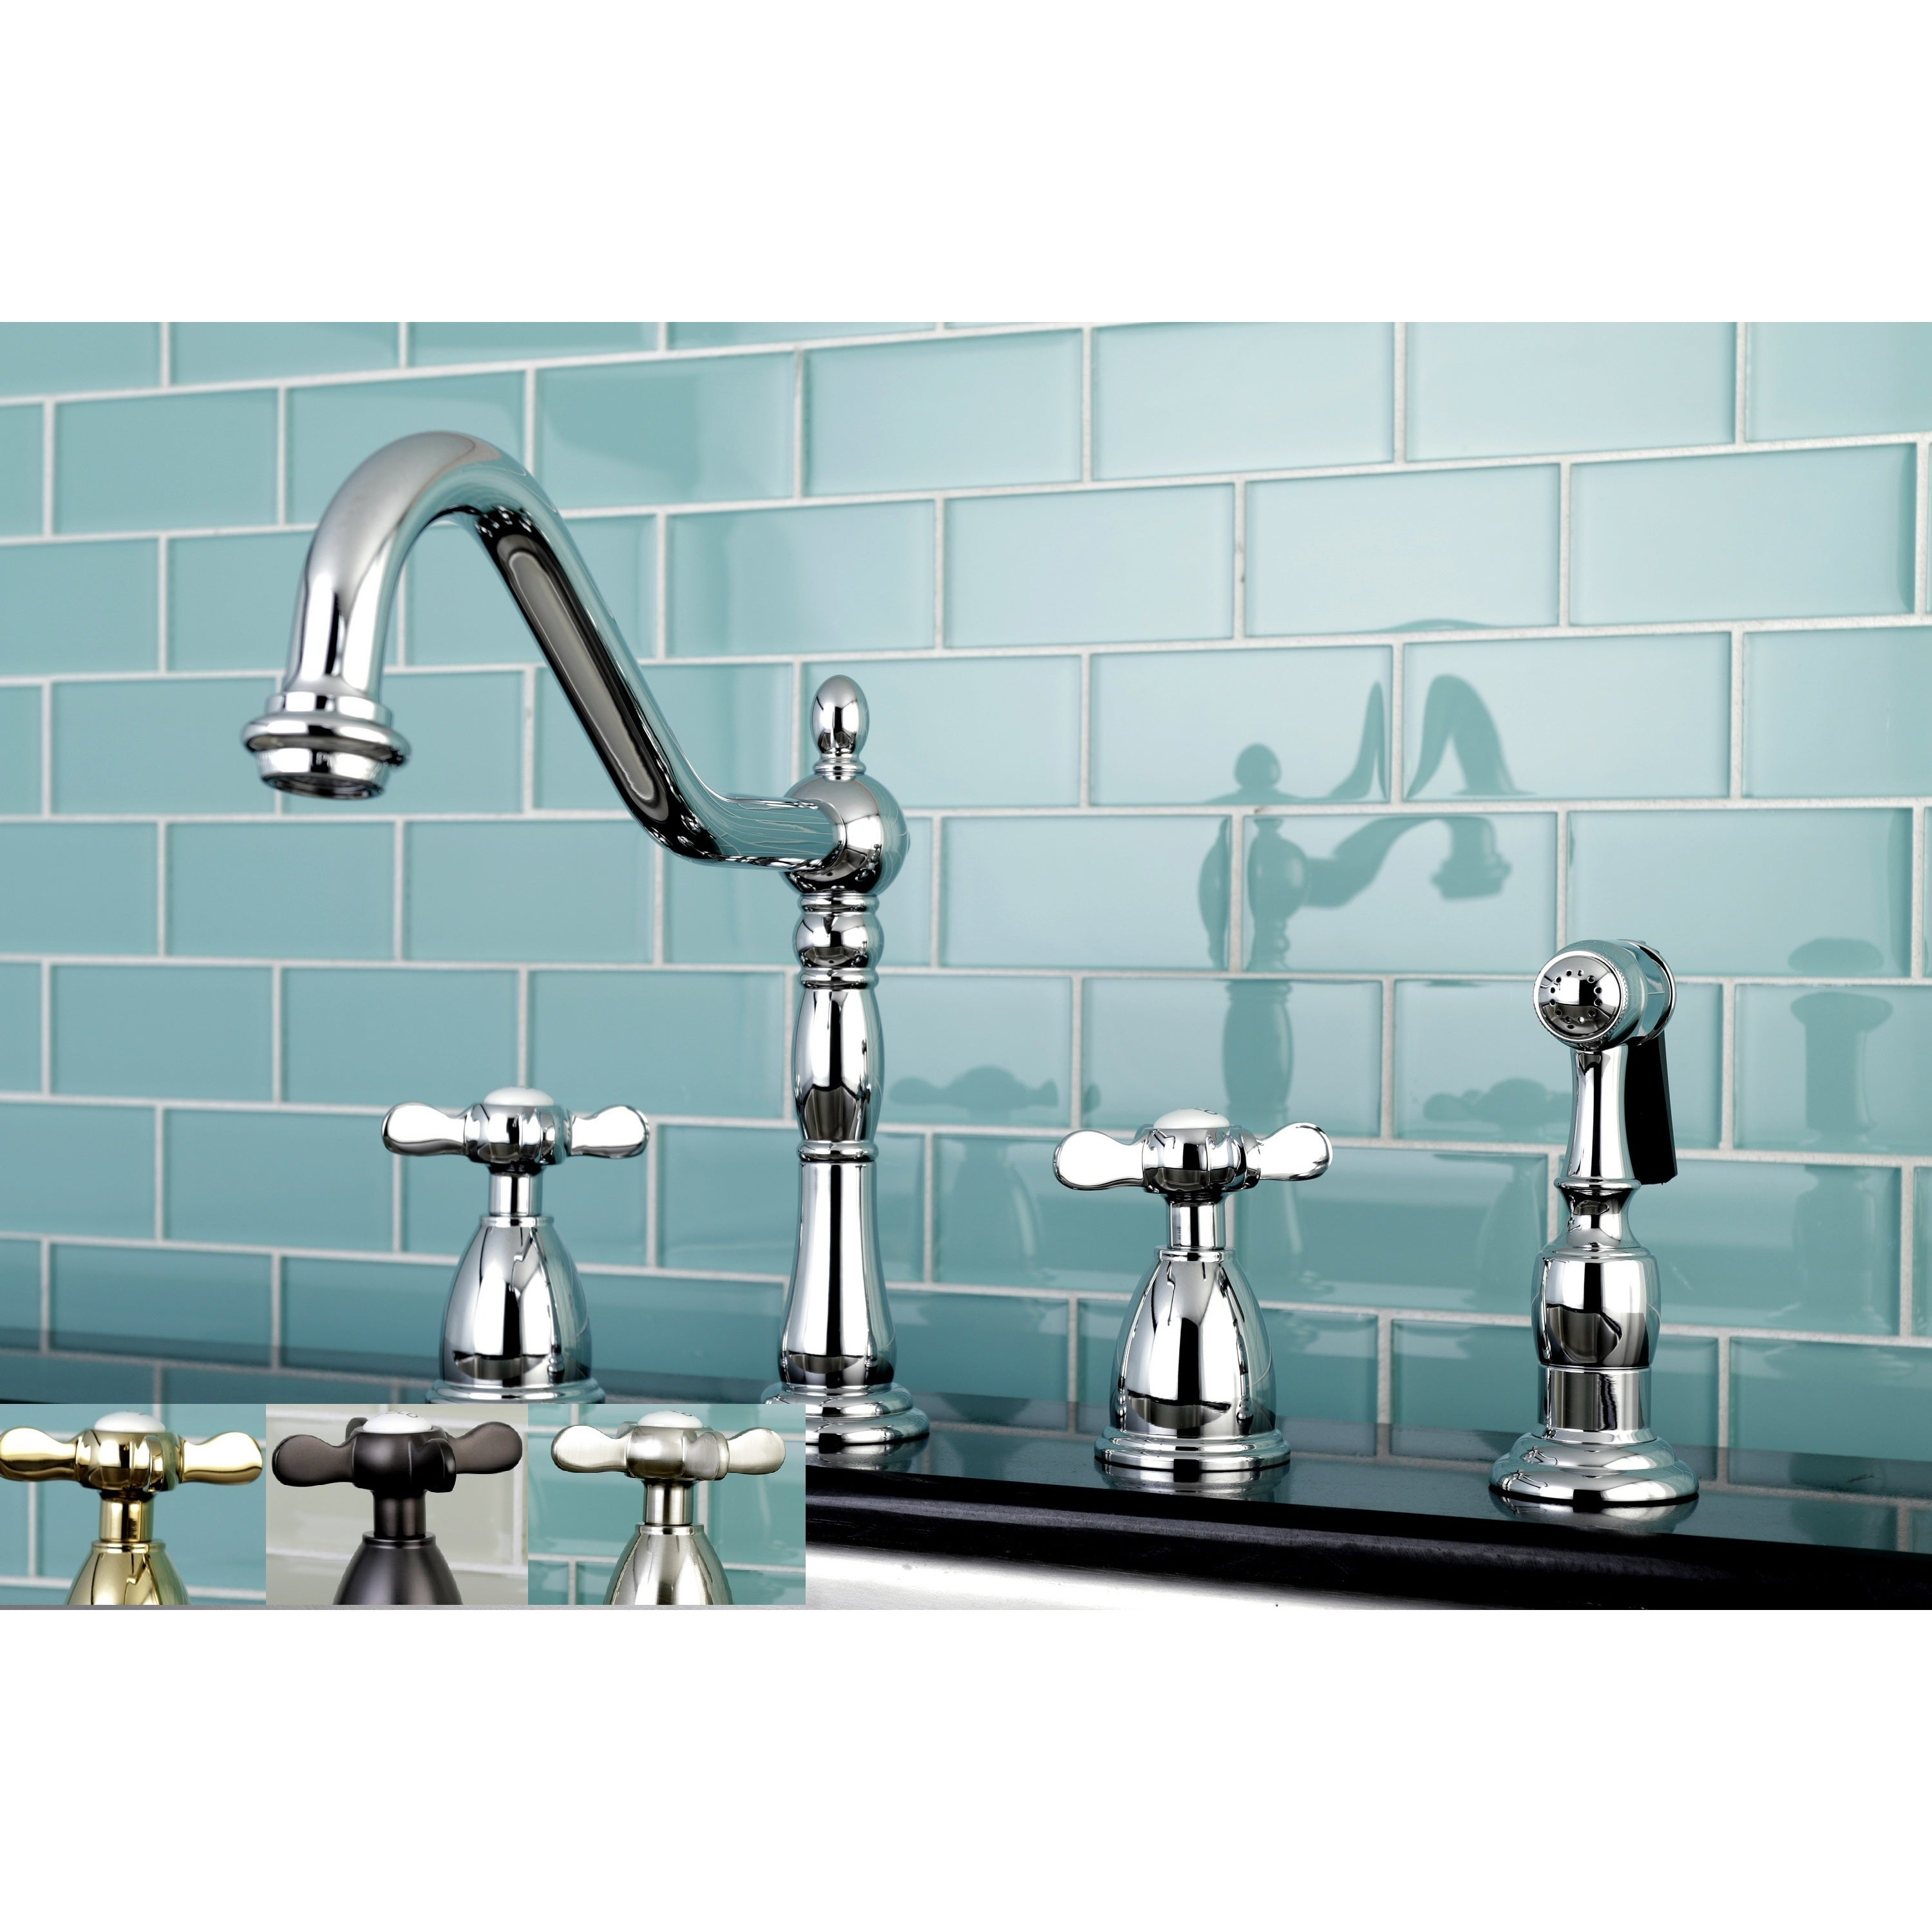 Buy Bronze Finish Kitchen Faucets Online at Overstock.com | Our Best ...